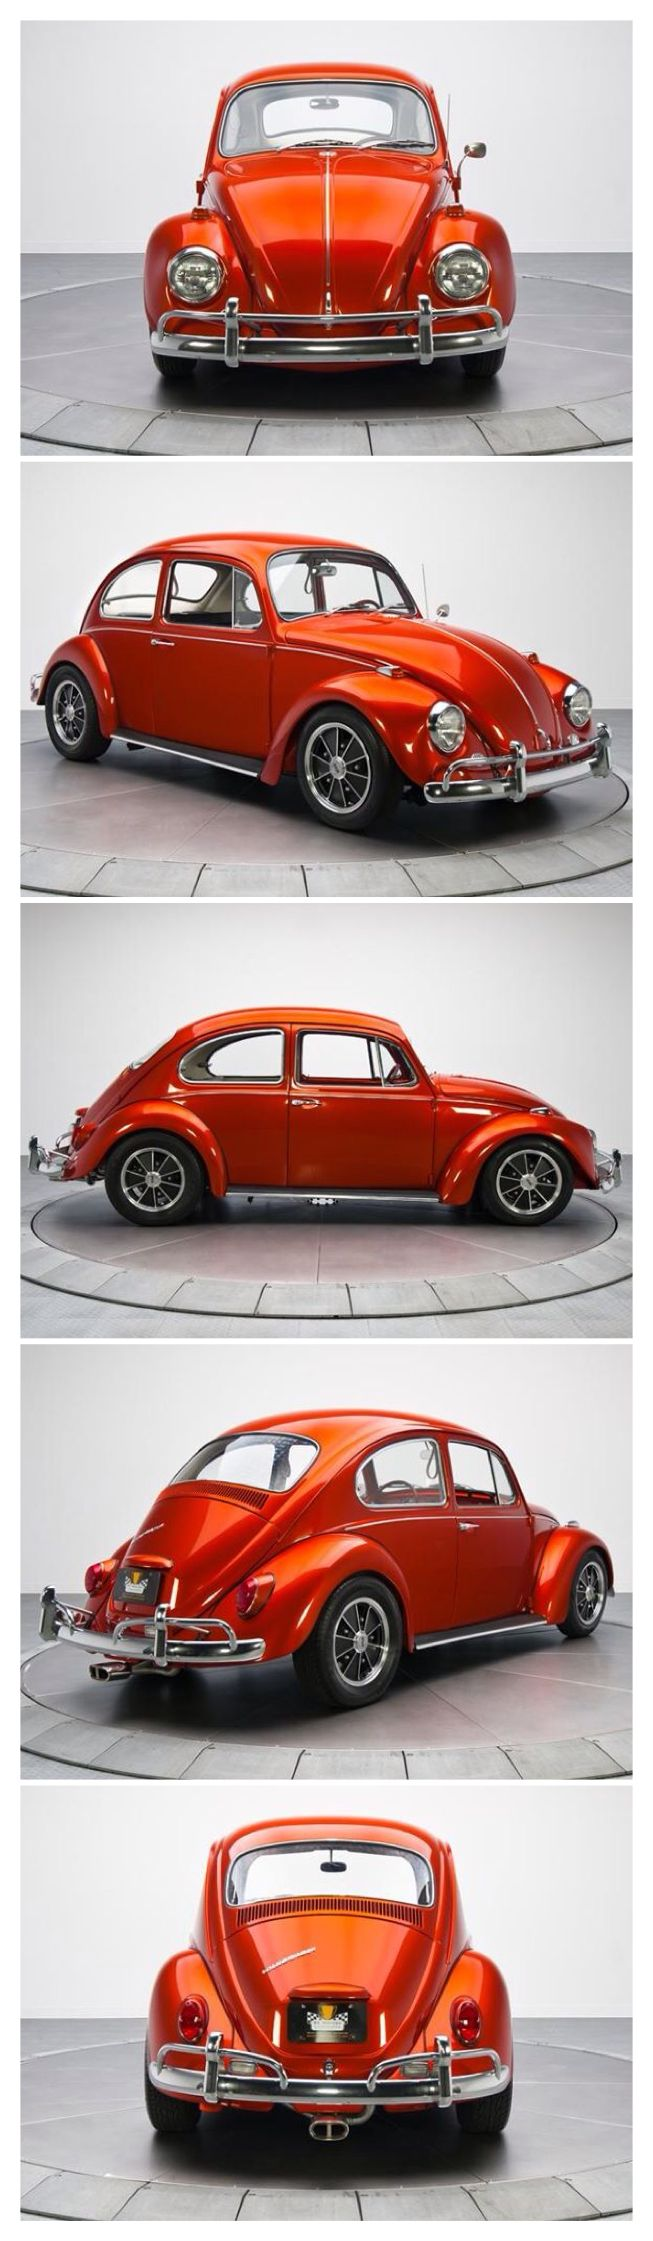 1967 VW Beetle. My first car was a '67 VW. I PAID $100 for it, & $200 to rebuild the engine with my father. It didn't look like this...